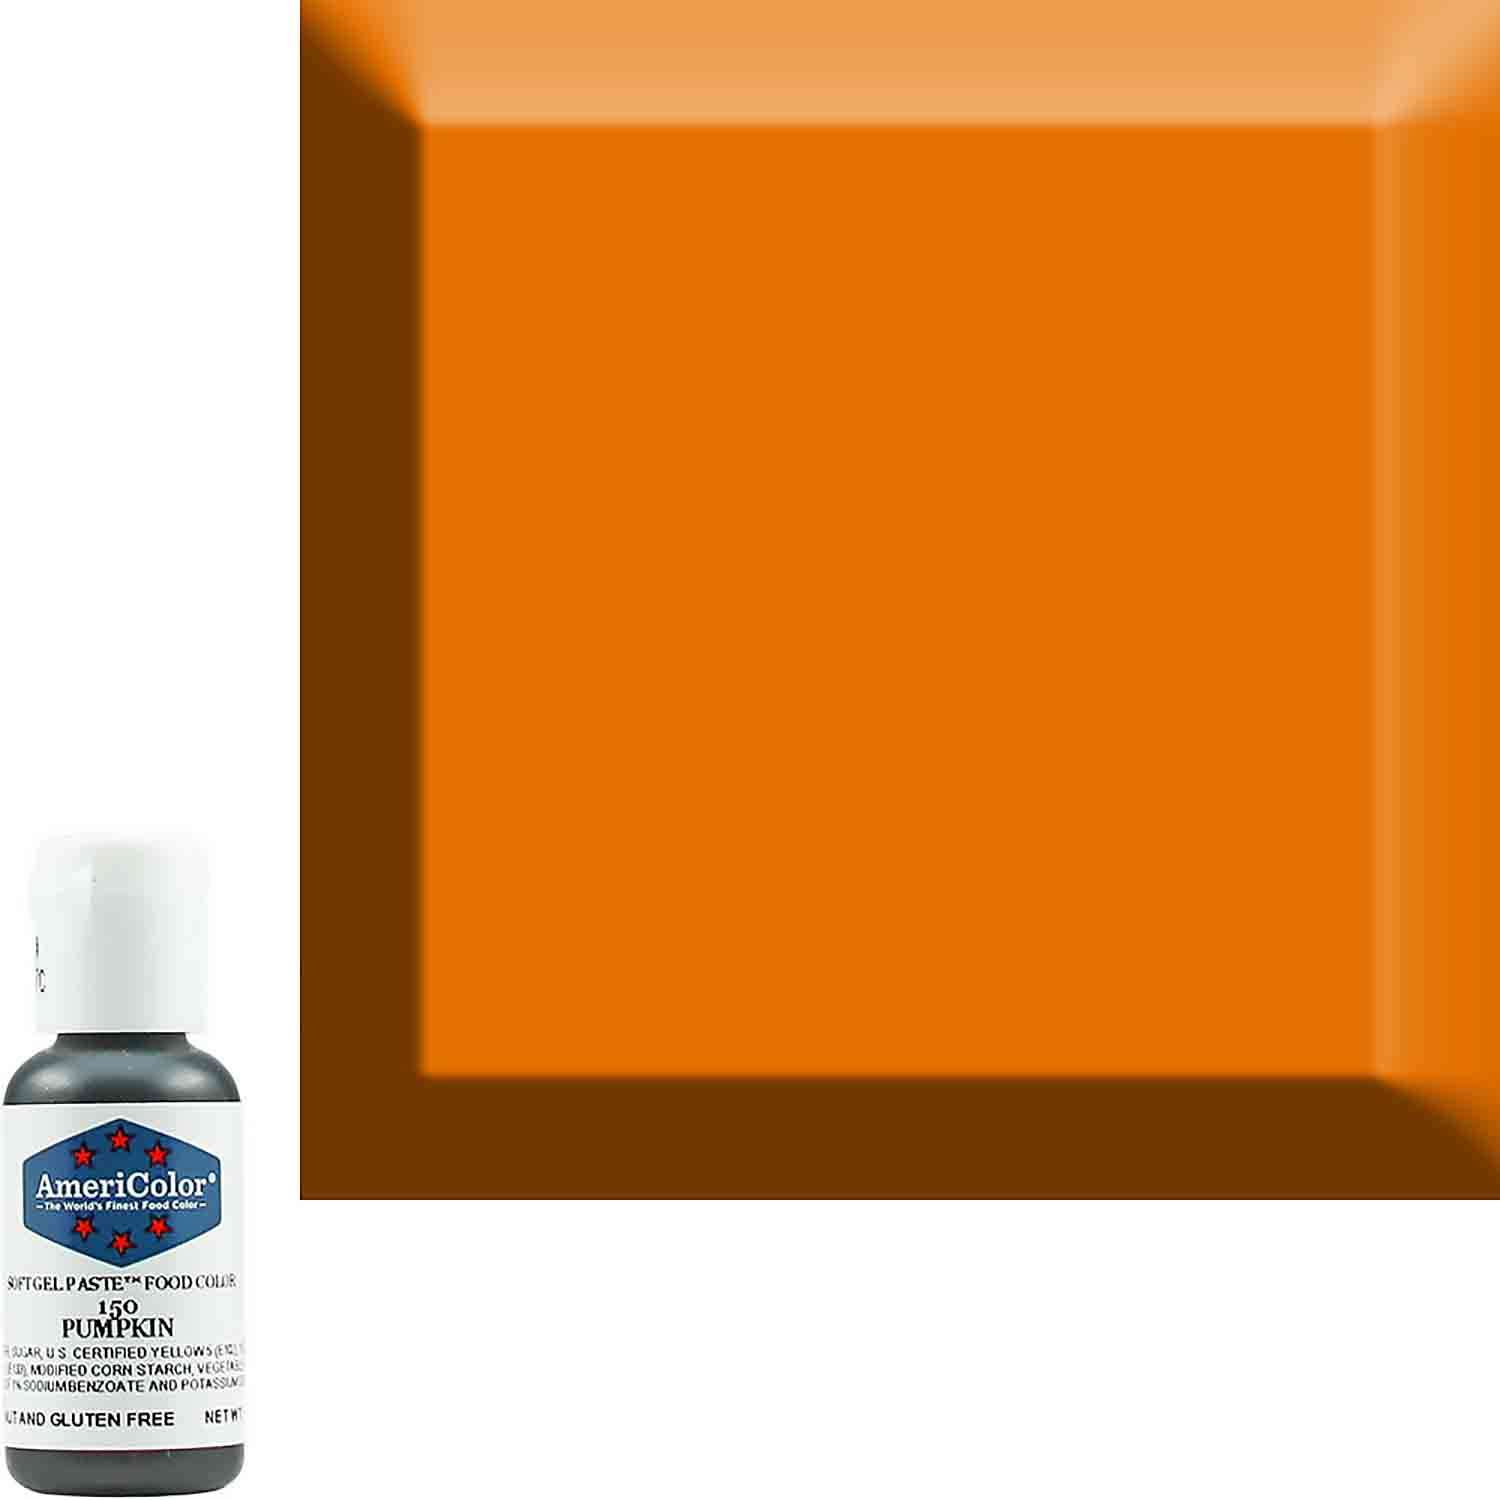 Pumpkin AmeriColor® Soft Gel Paste™ Food Color